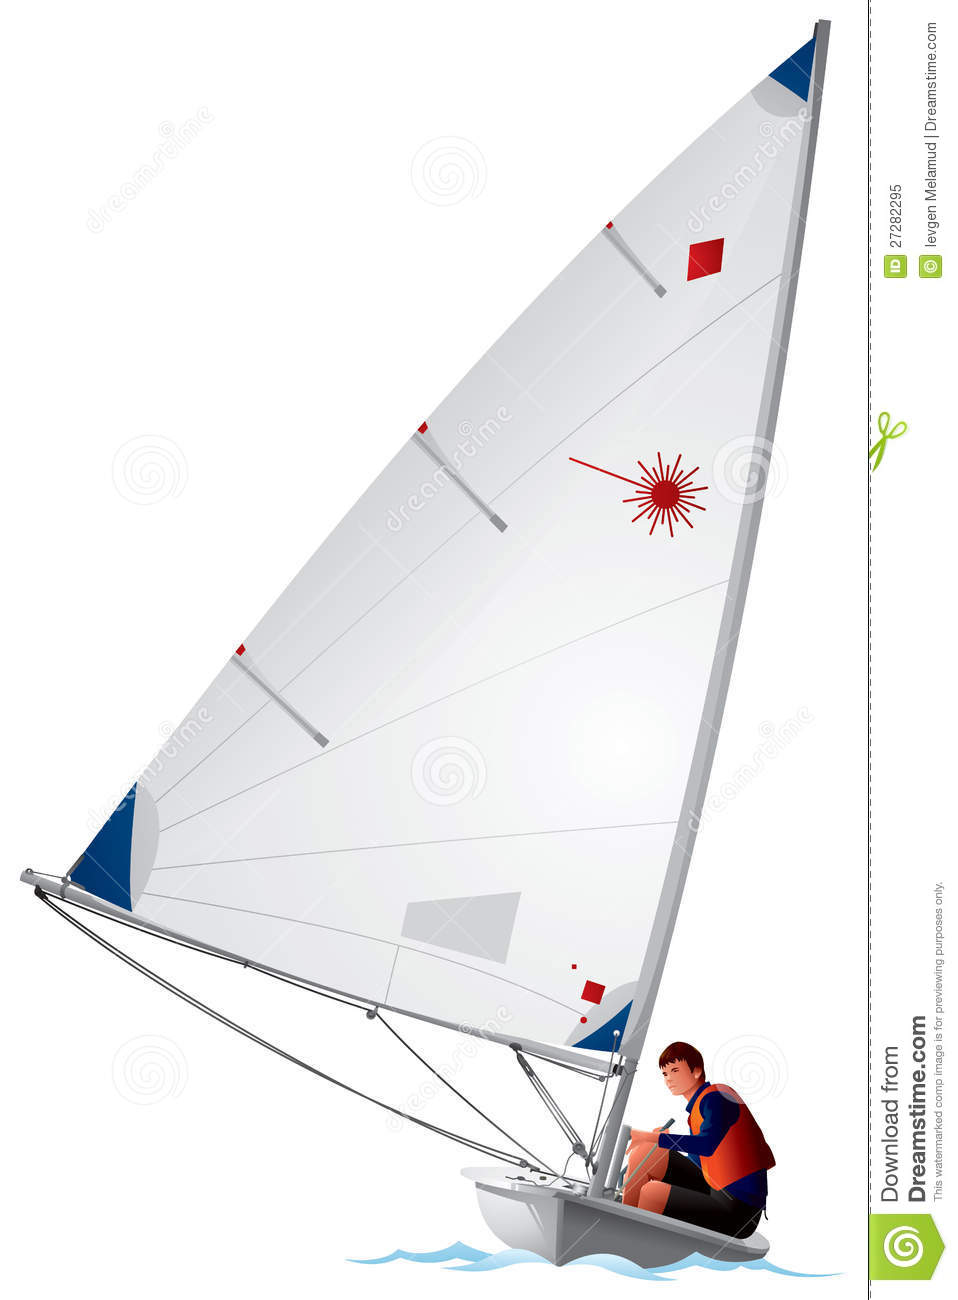 Laser class sailboat stock. Sail clipart sailing sport jpg library library